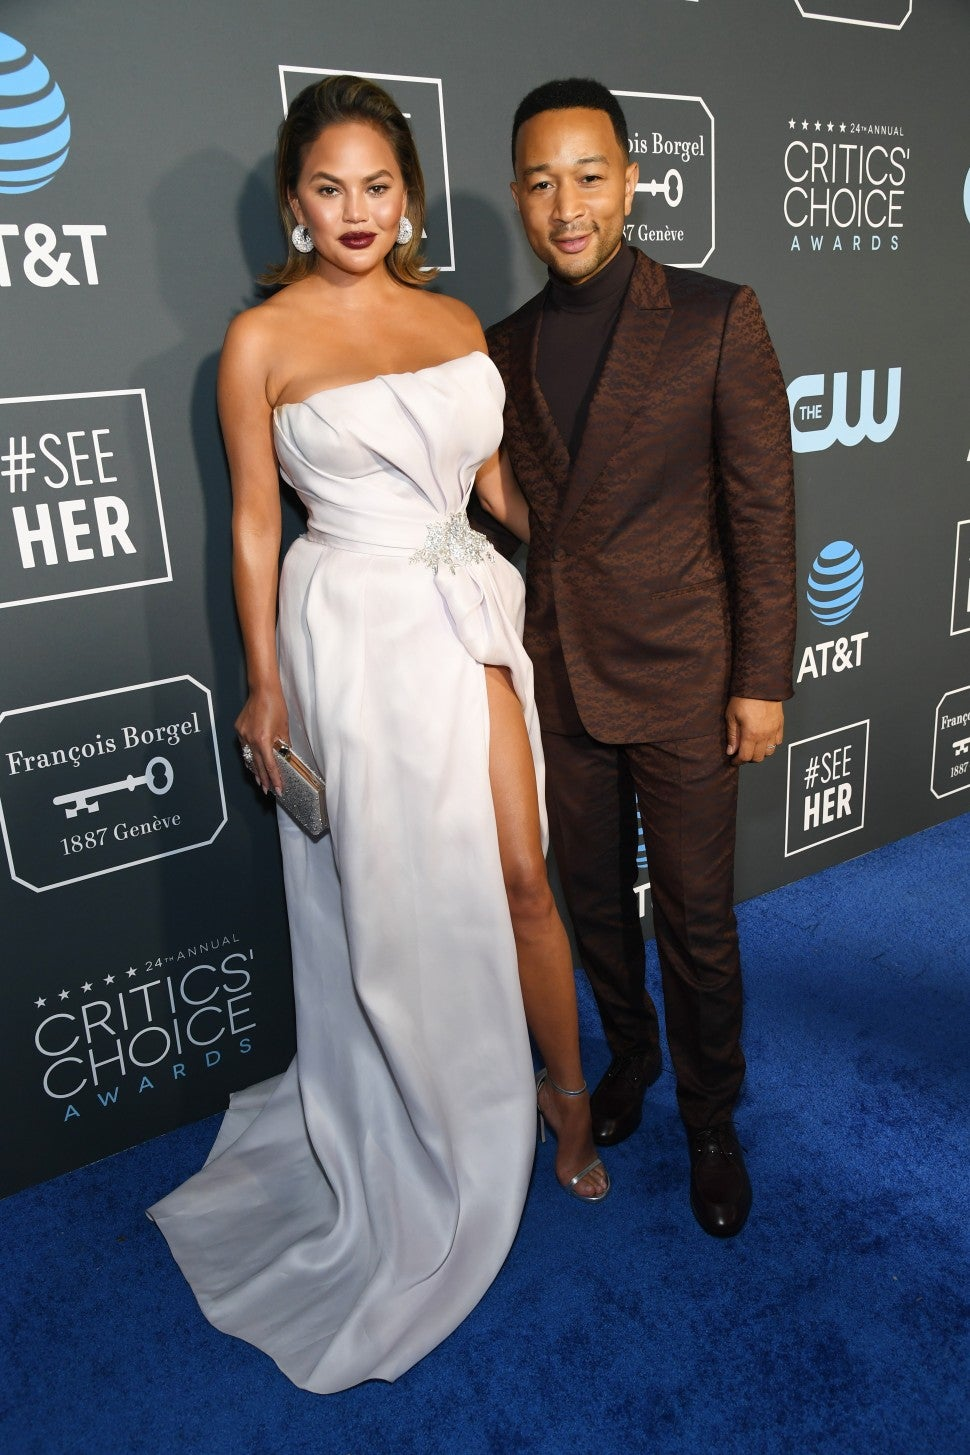 Chrissy Teigen and John Legend attend the 24th annual Critics' Choice Awards at Barker Hangar on January 13, 2019 in Santa Monica, California.